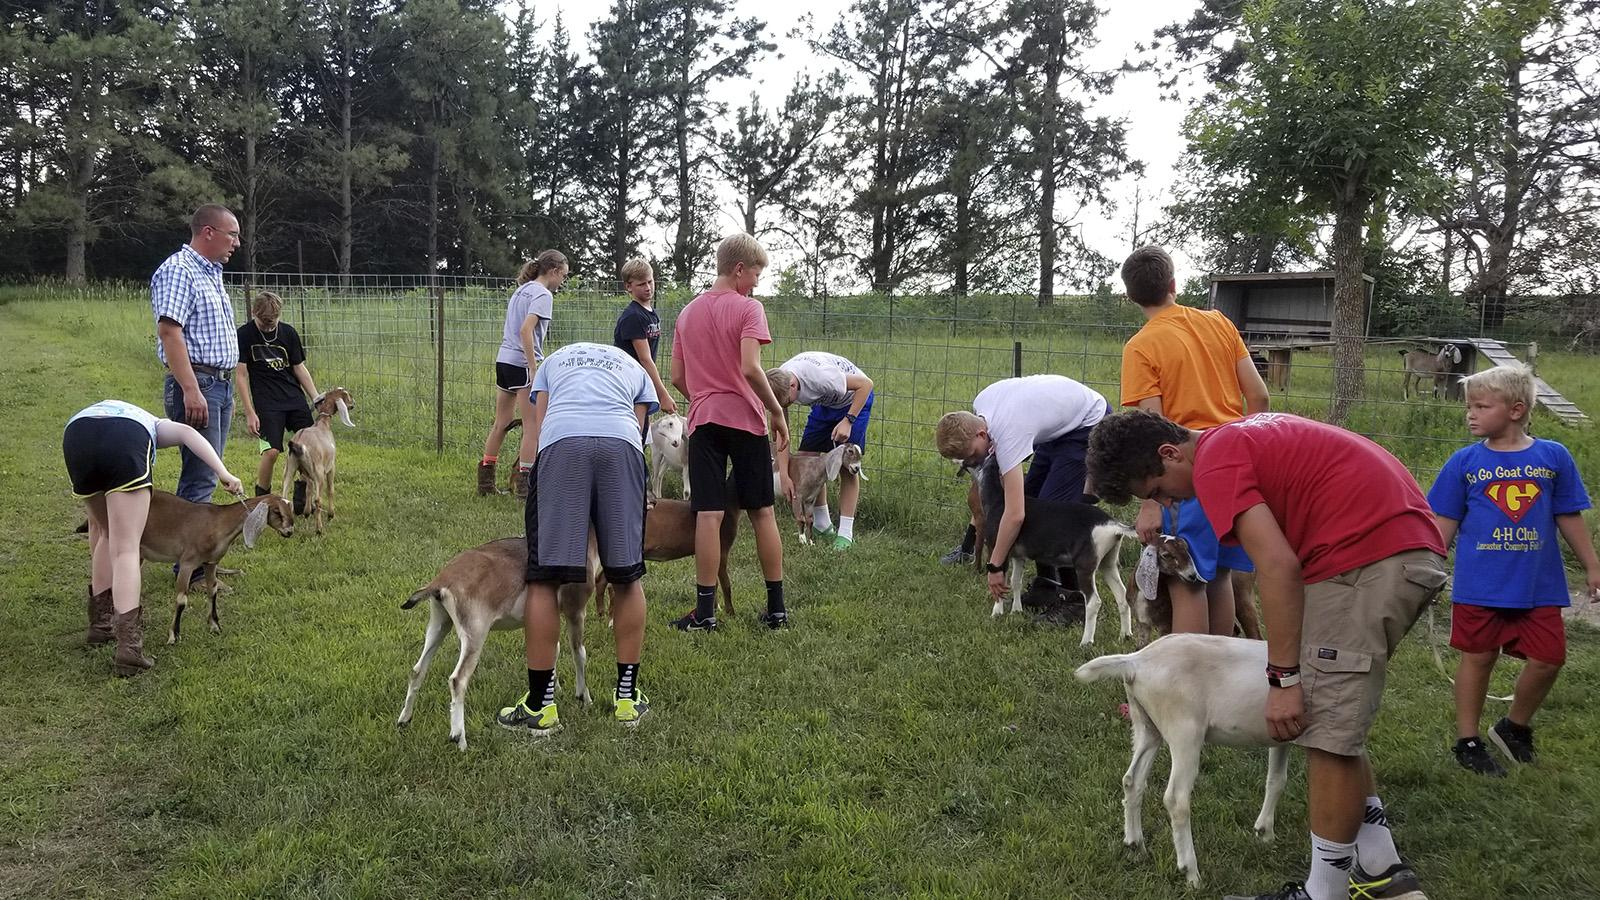 Group of youth interacting with their goats